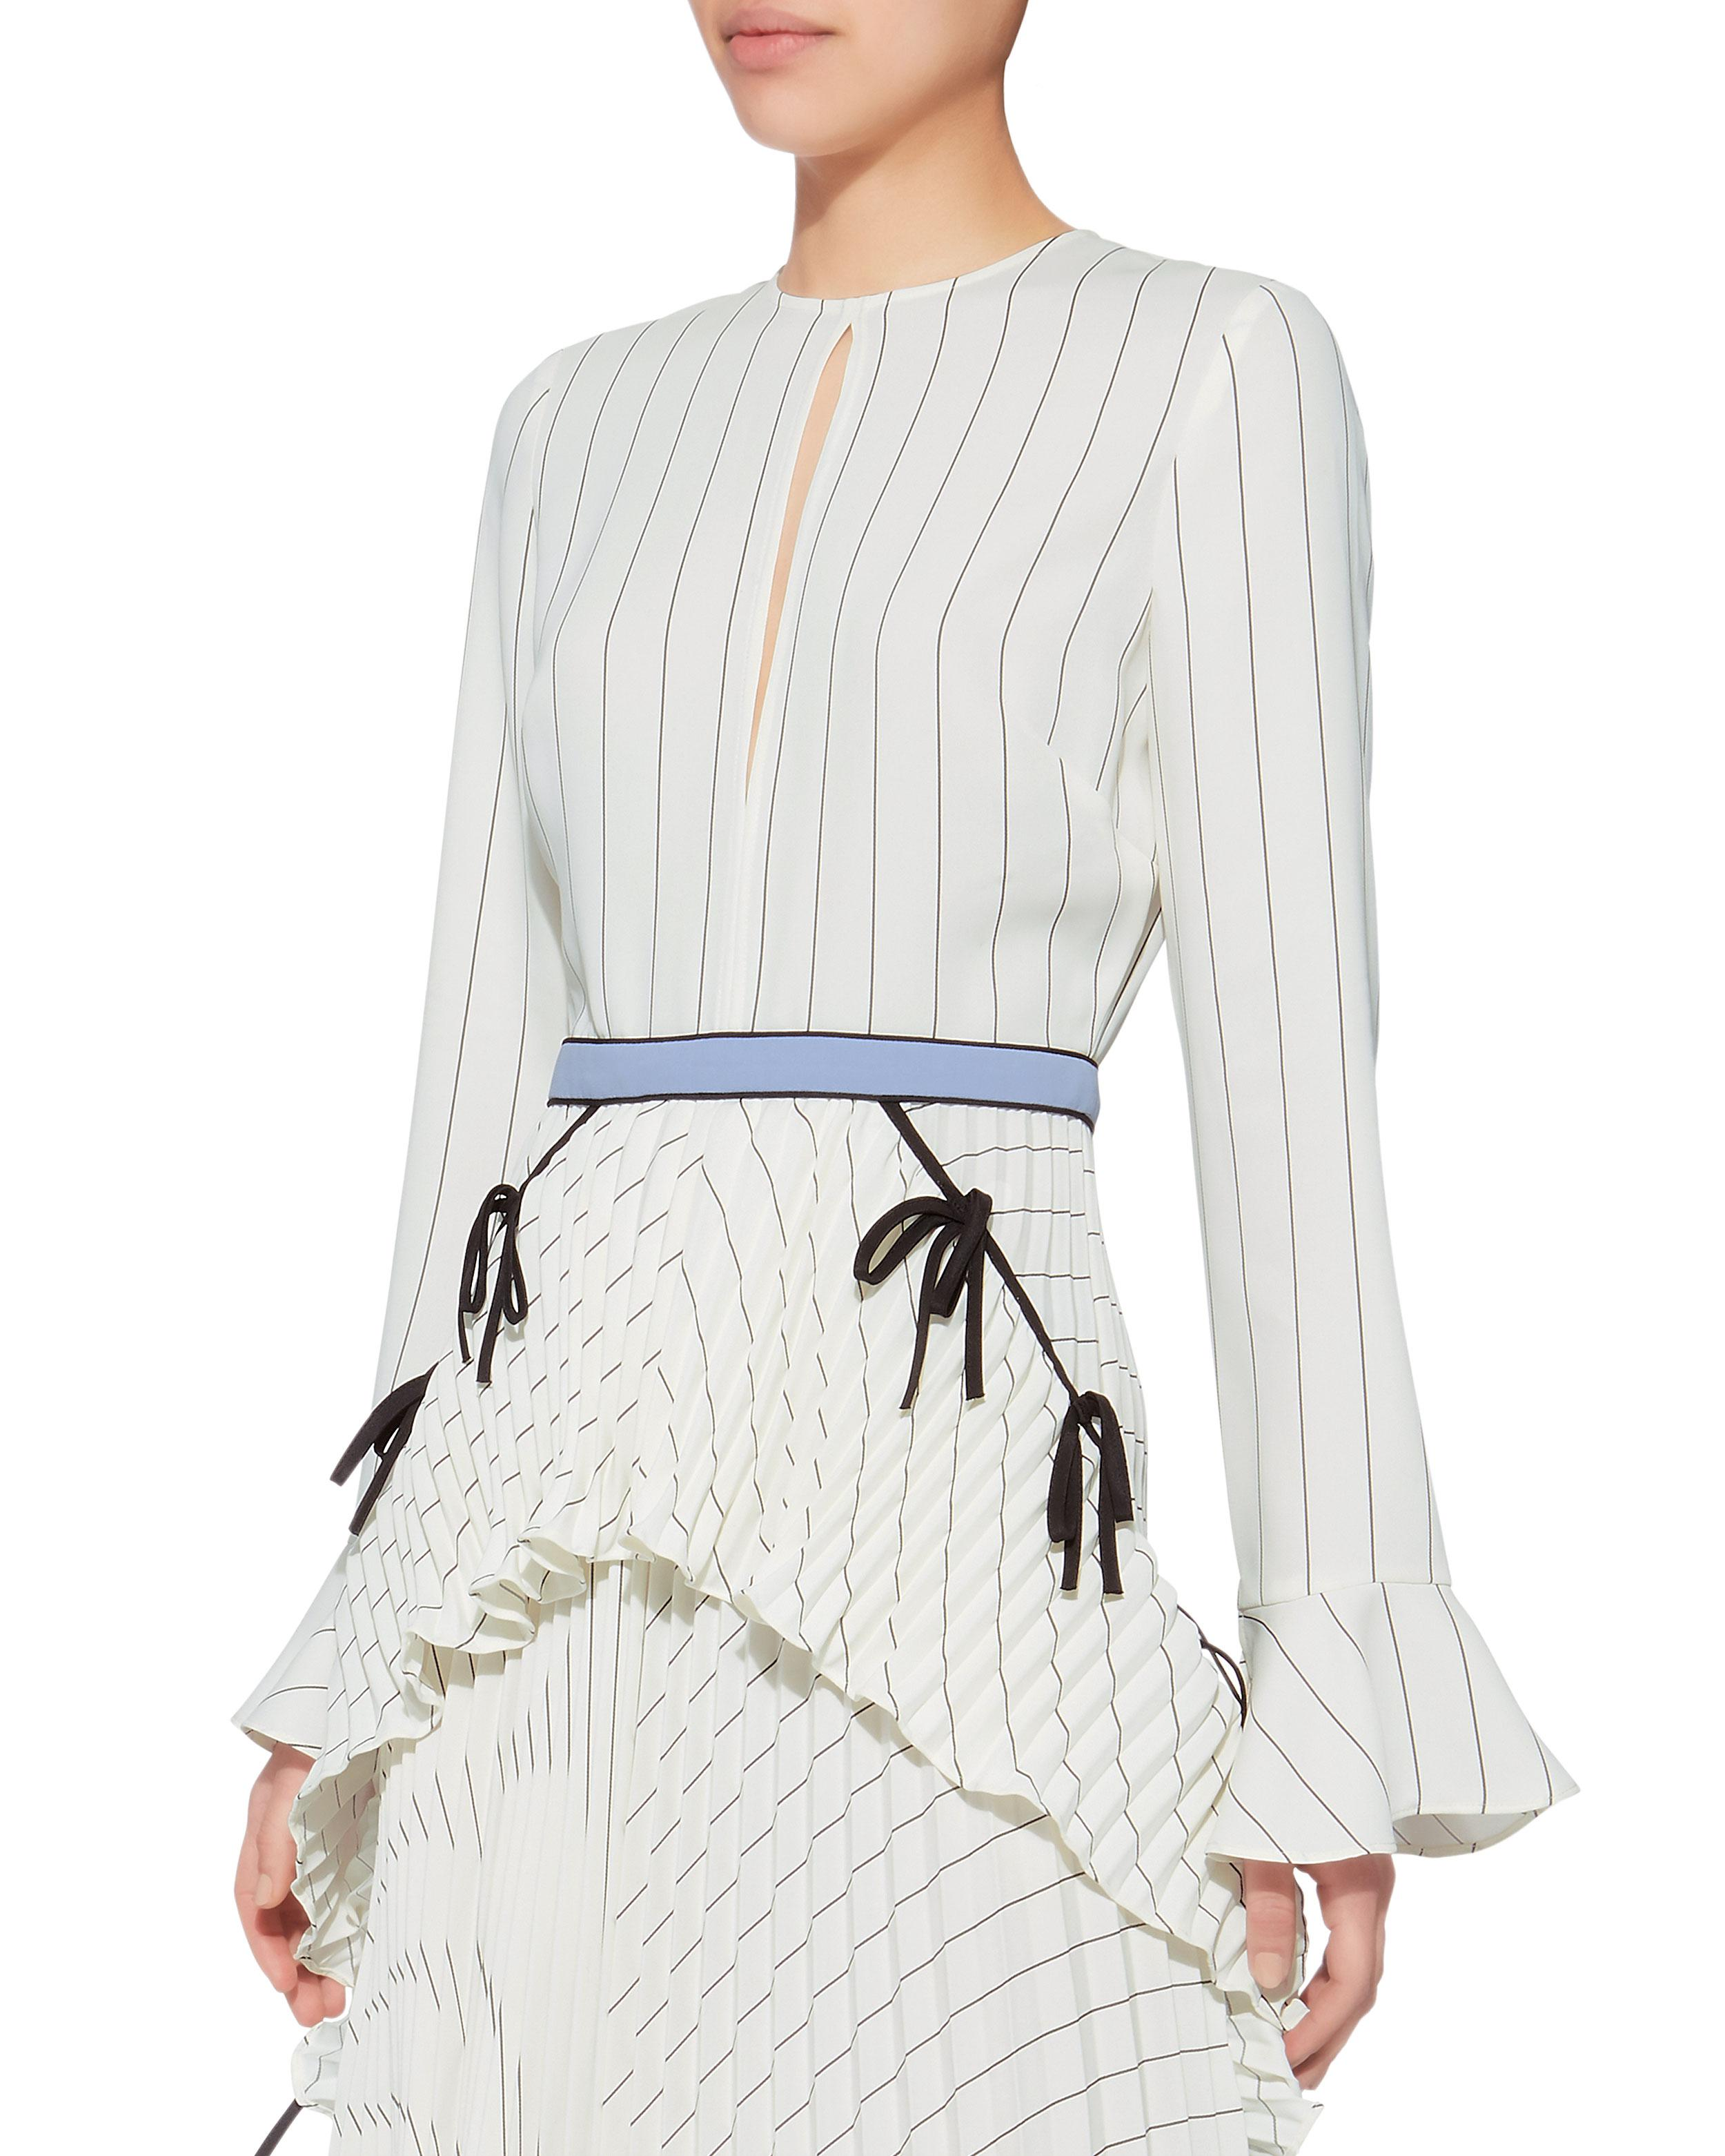 7815304c967 Self-Portrait Monochrome Striped Pleated Dress in White - Lyst